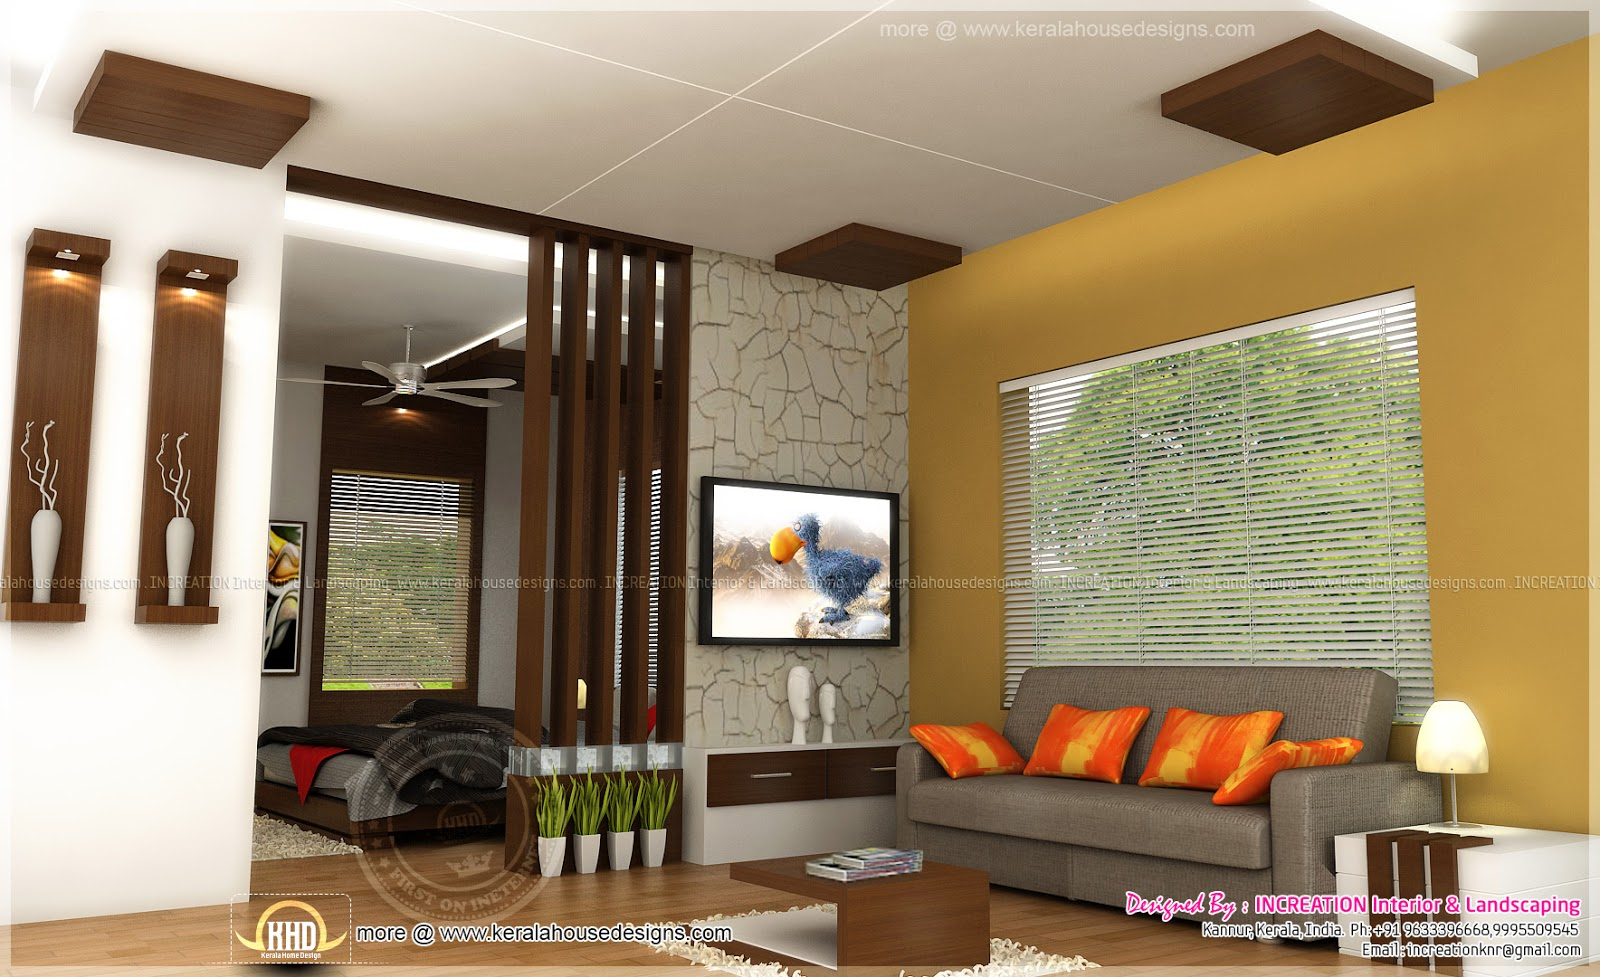 Interior designs from kannur kerala home kerala plans for Kerala model interior designs